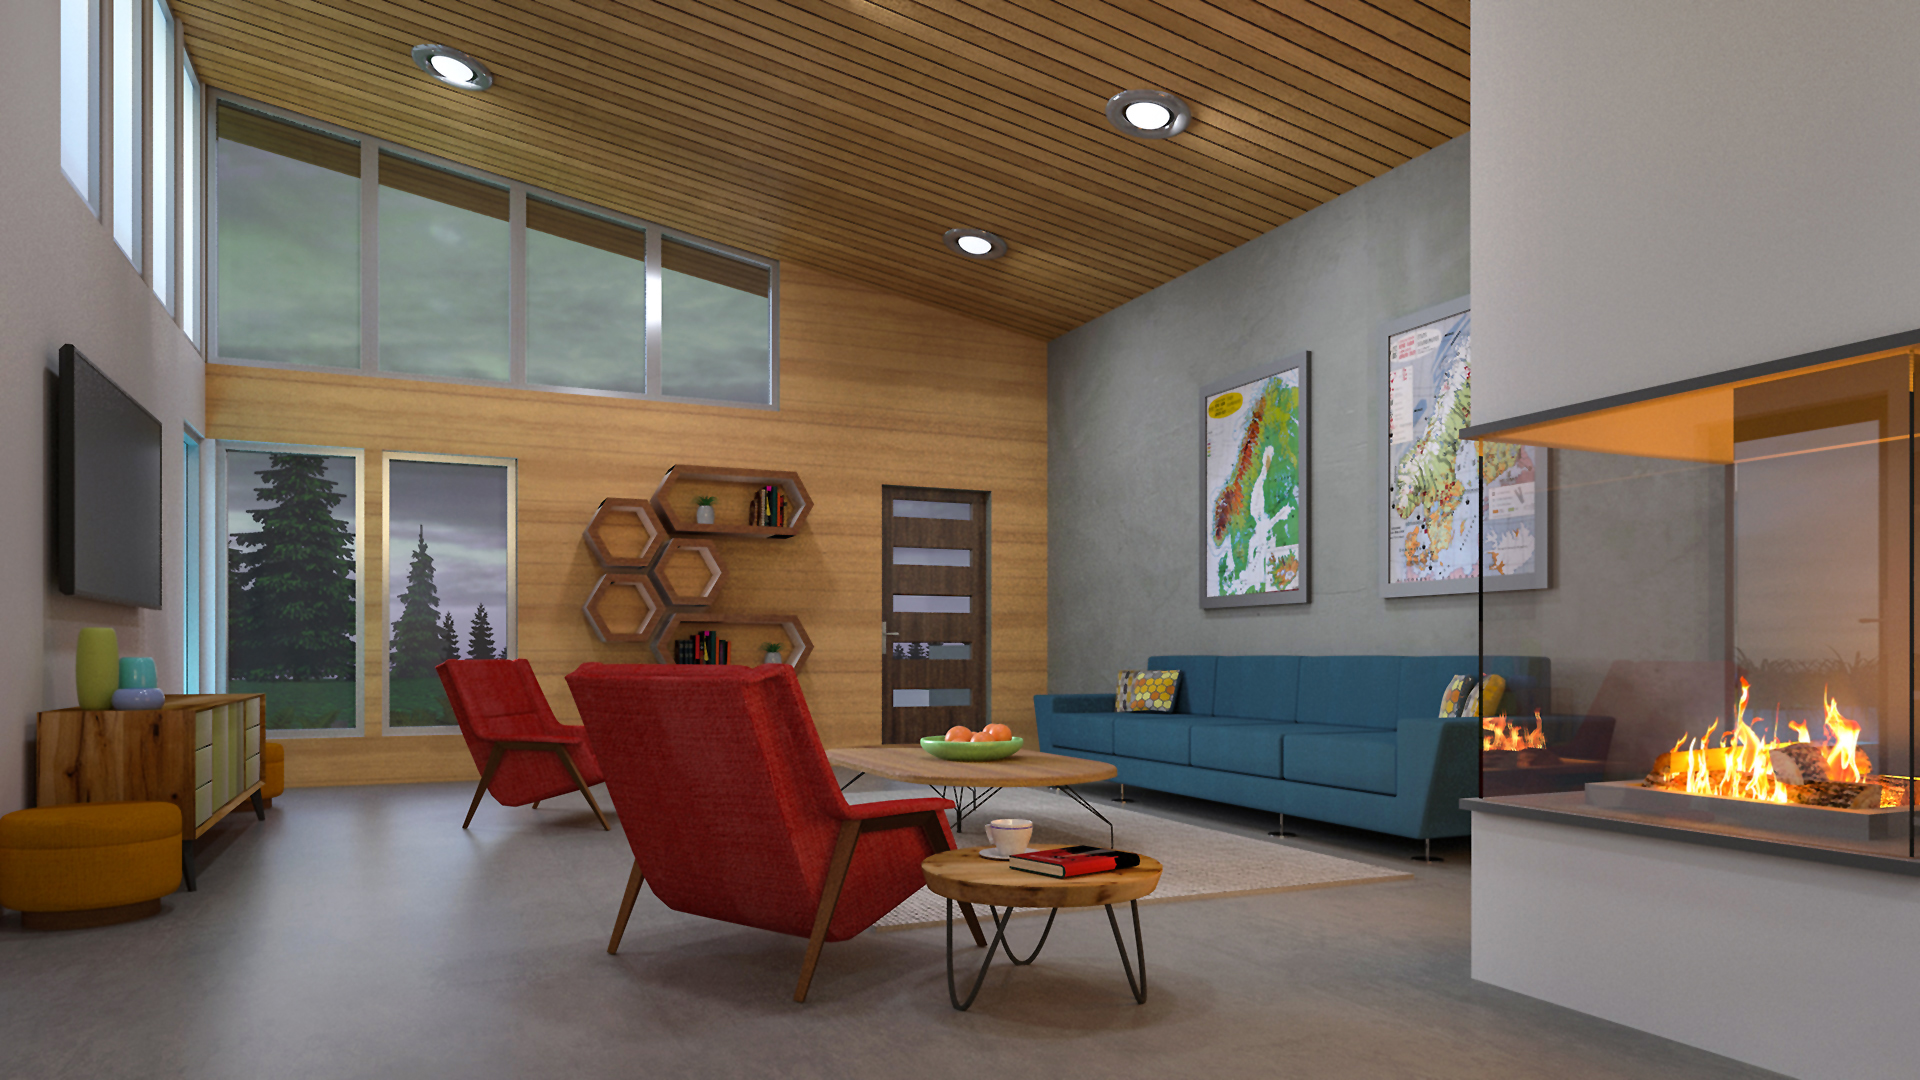 Residential Design and Visualization: Concept Development